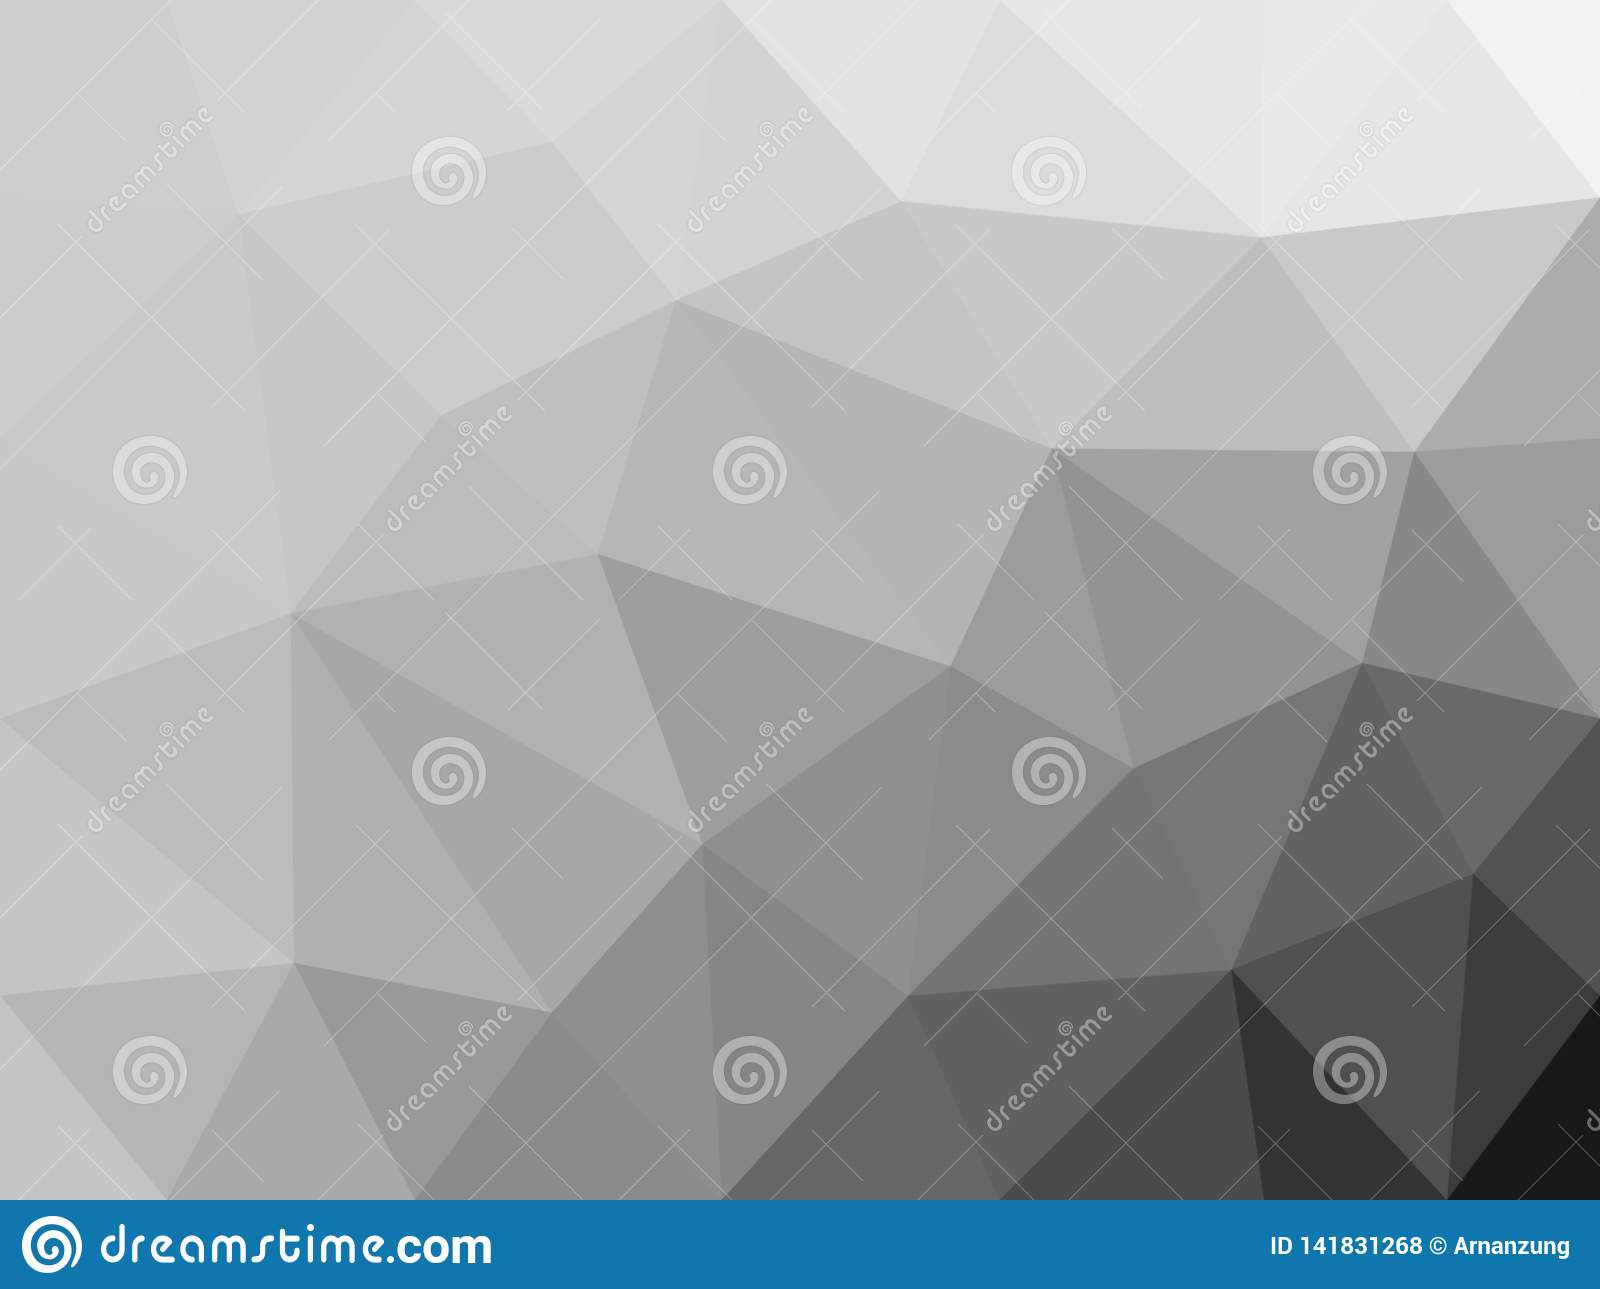 Monochrome polygon abstract background.